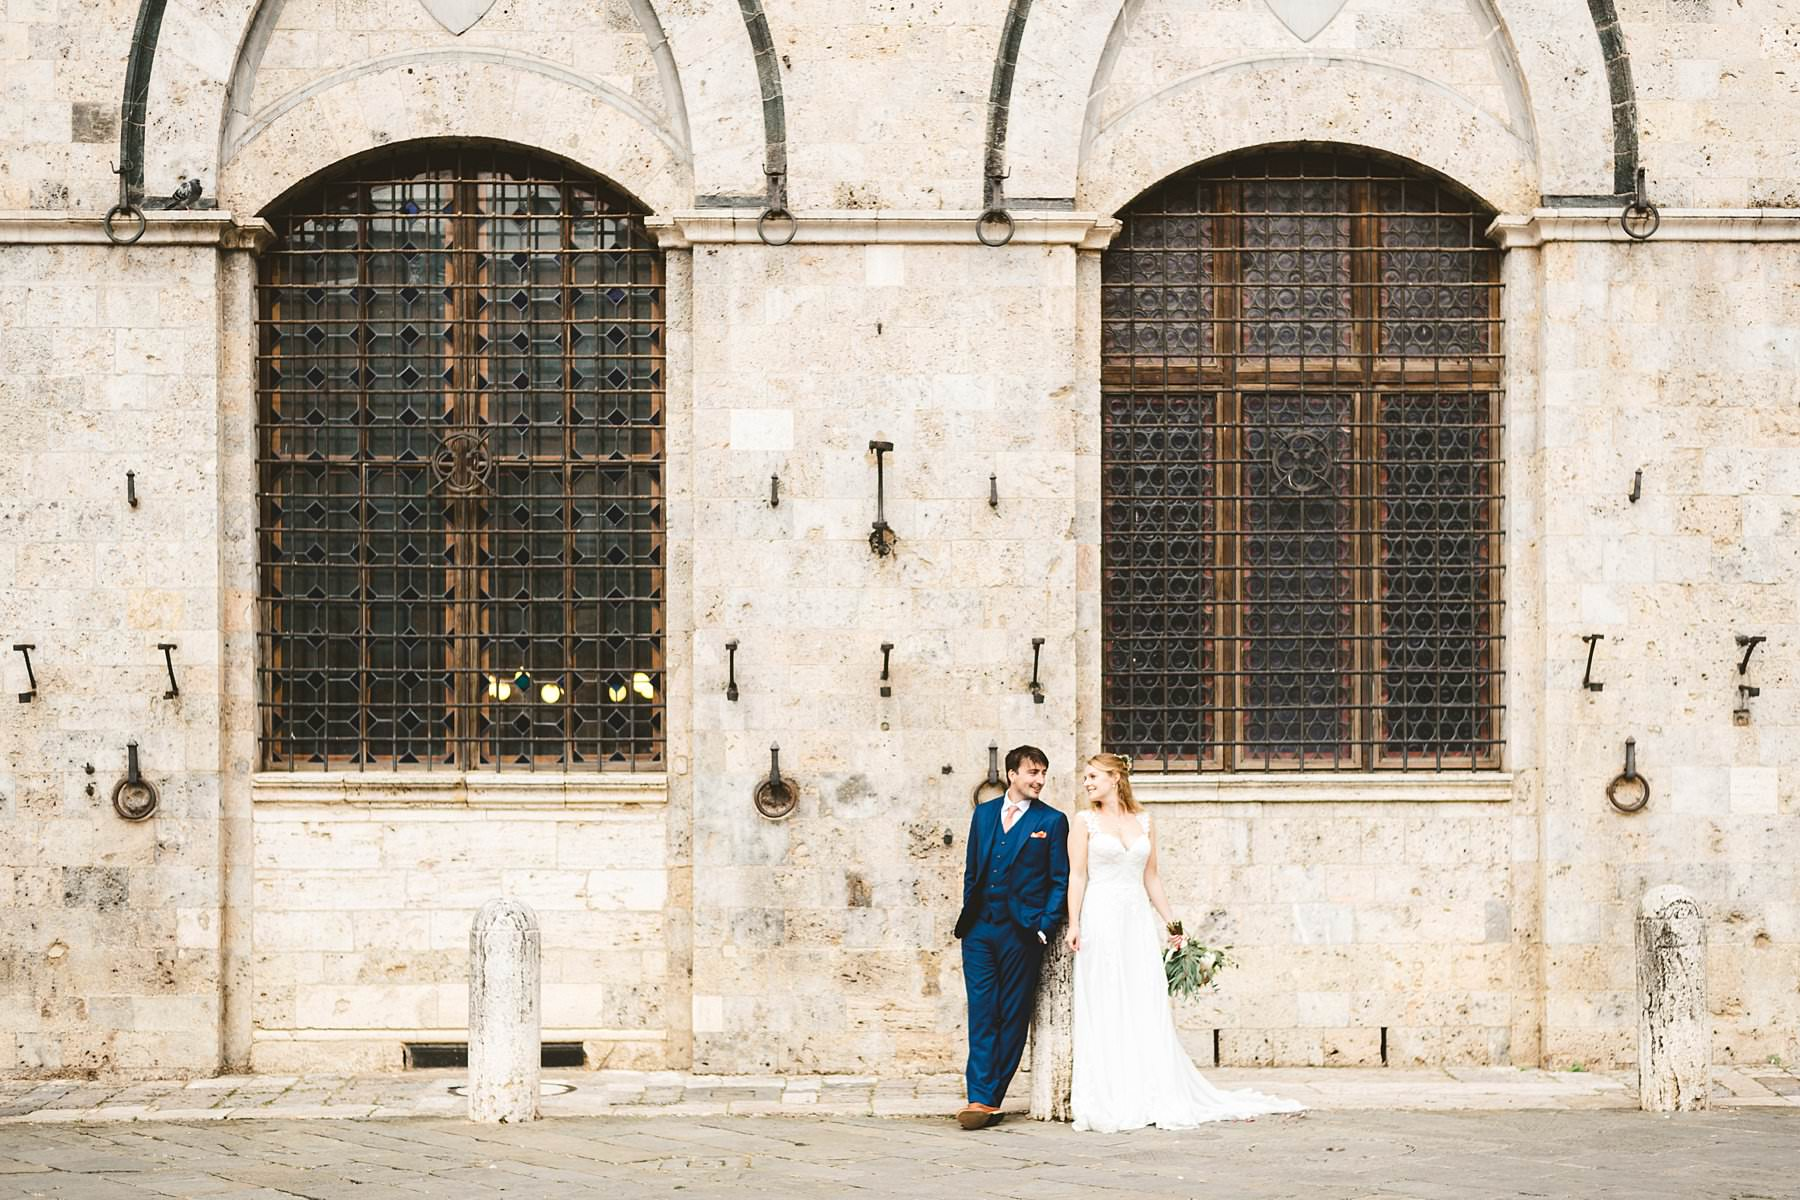 Wedding photos in all the most iconic places in Siena. Intimate destination elopement in Tuscany